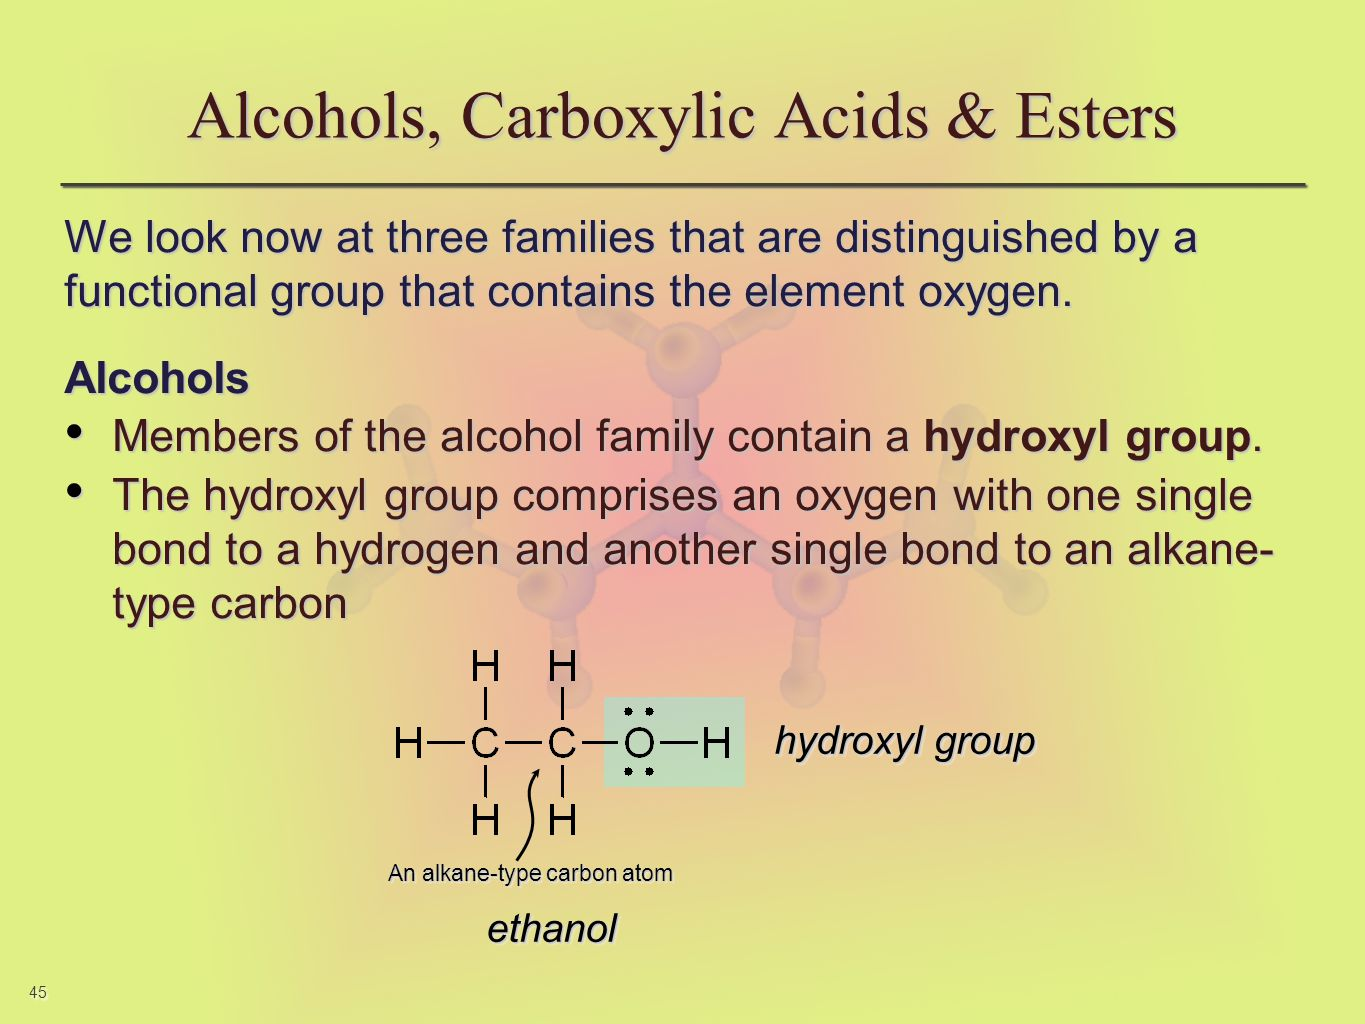 45 We look now at three families that are distinguished by a functional group that contains the element oxygen. Alcohols Members of the alcohol family